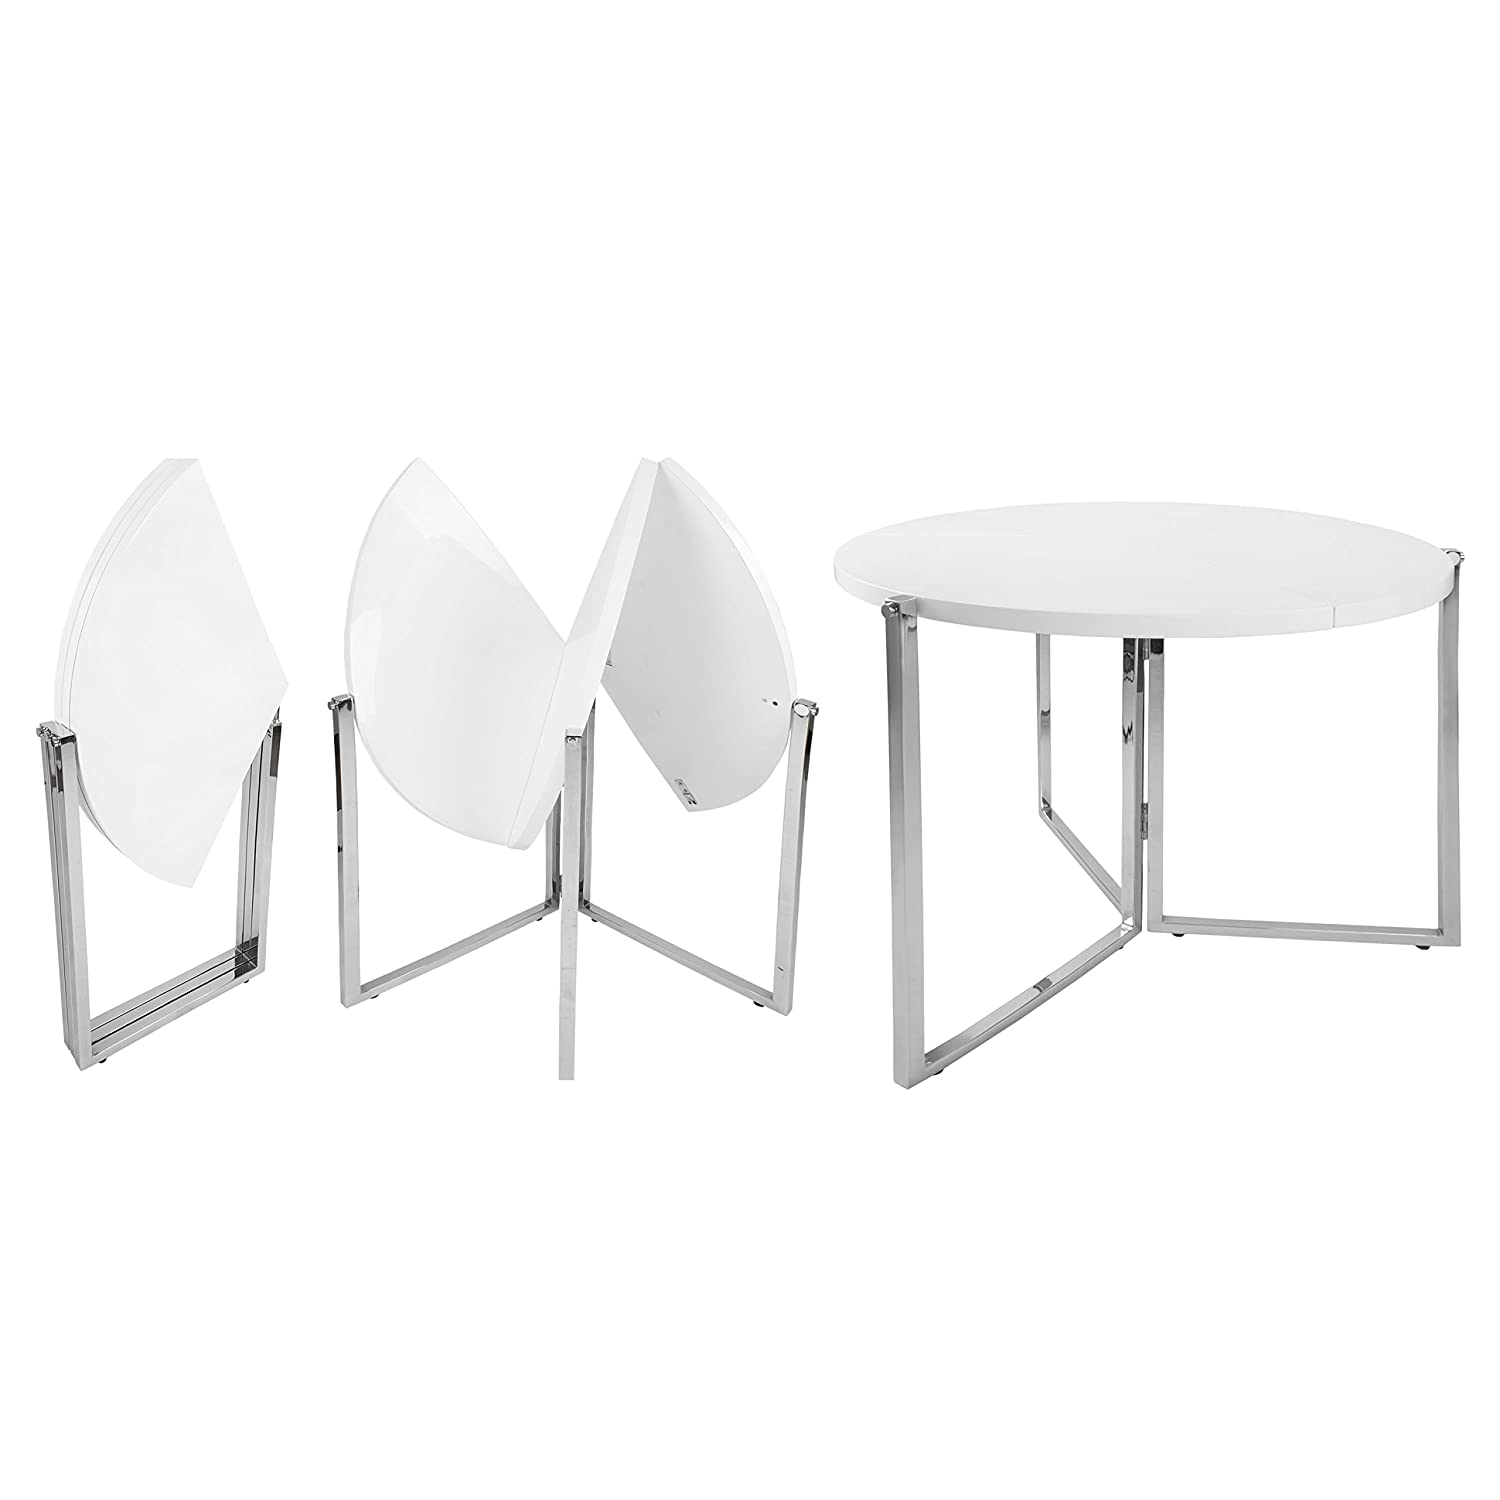 SpaceMaster SM-CO-2389 Easy Folding Space Saving Expandable Large Round Kitchen and Dining Table, White